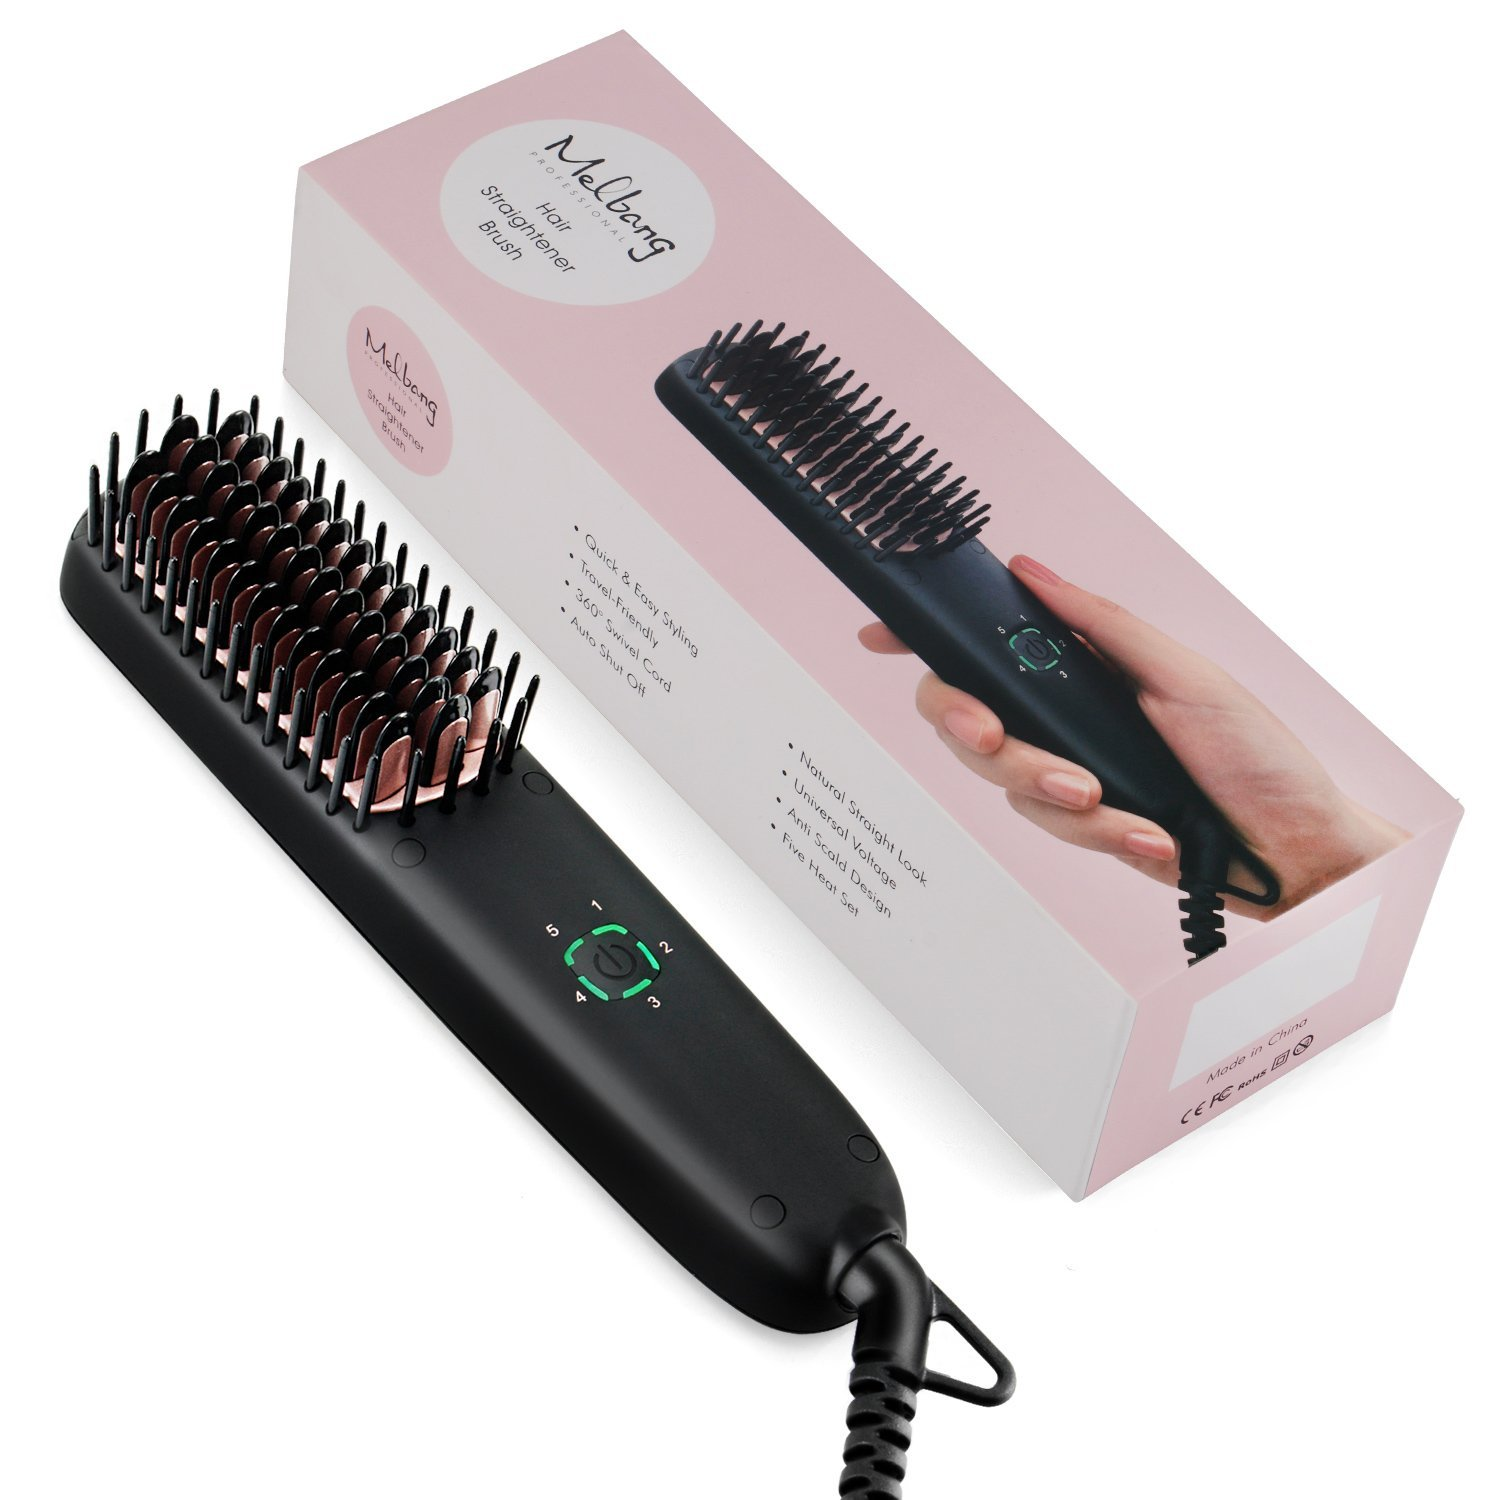 Melbang Mini Hair Straightener Brush Anti-scald Design PTC Heating Ceramic Technology Dual voltage of 110 to 240V Auto Shut Off Fast Straightening Wavy Curly Kinky Hair